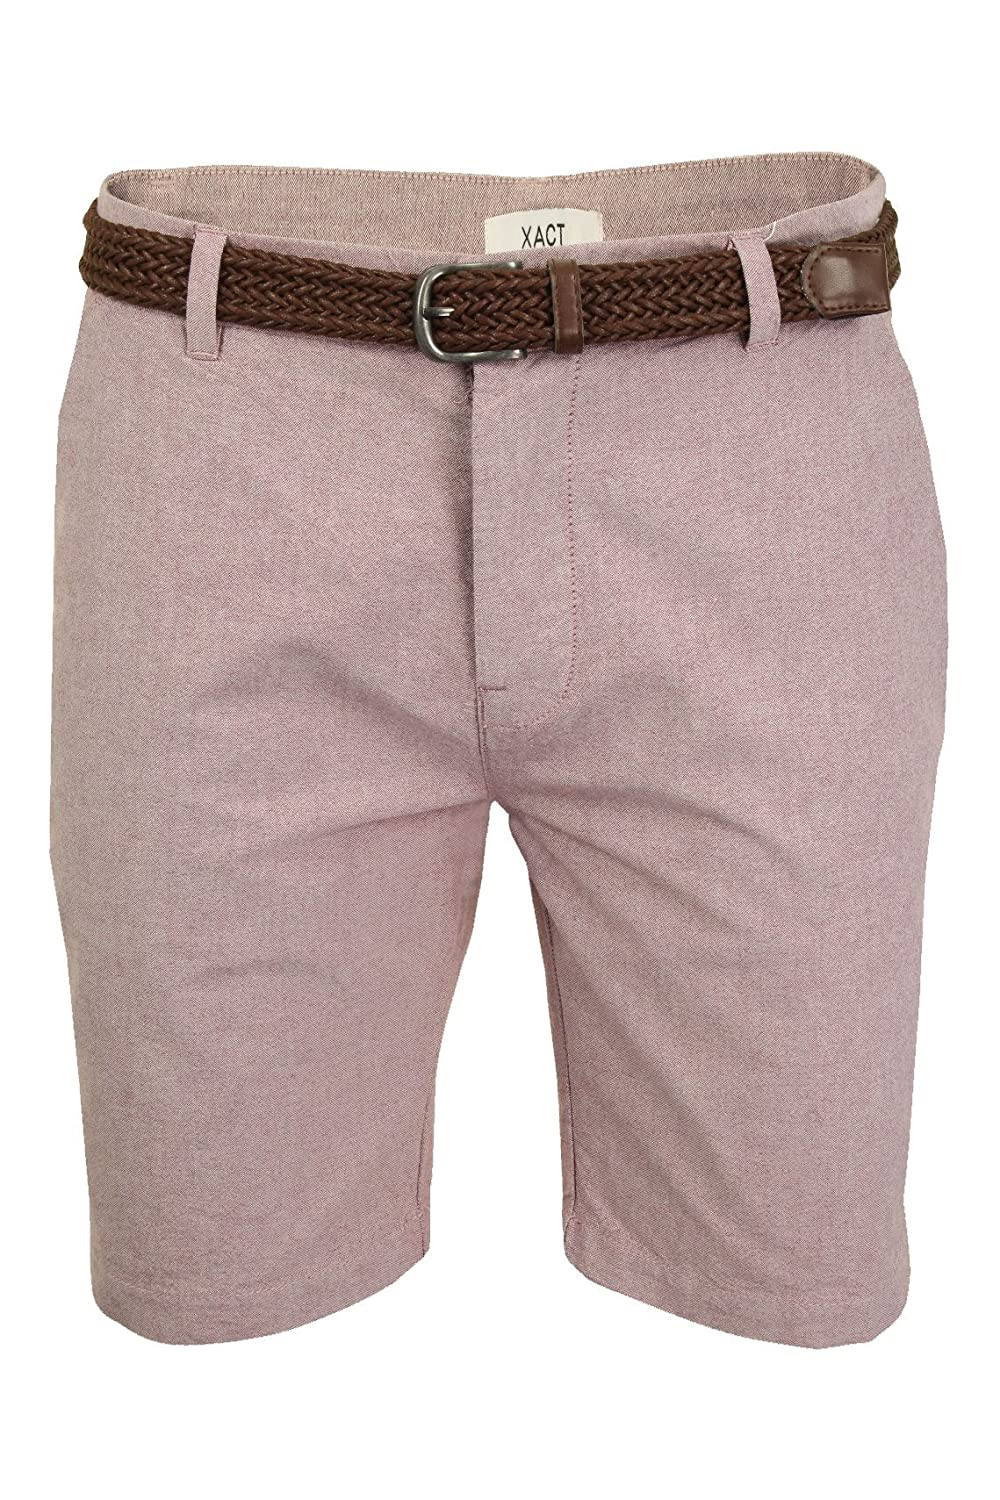 Xact Mens Oxford Chino Shorts Belt